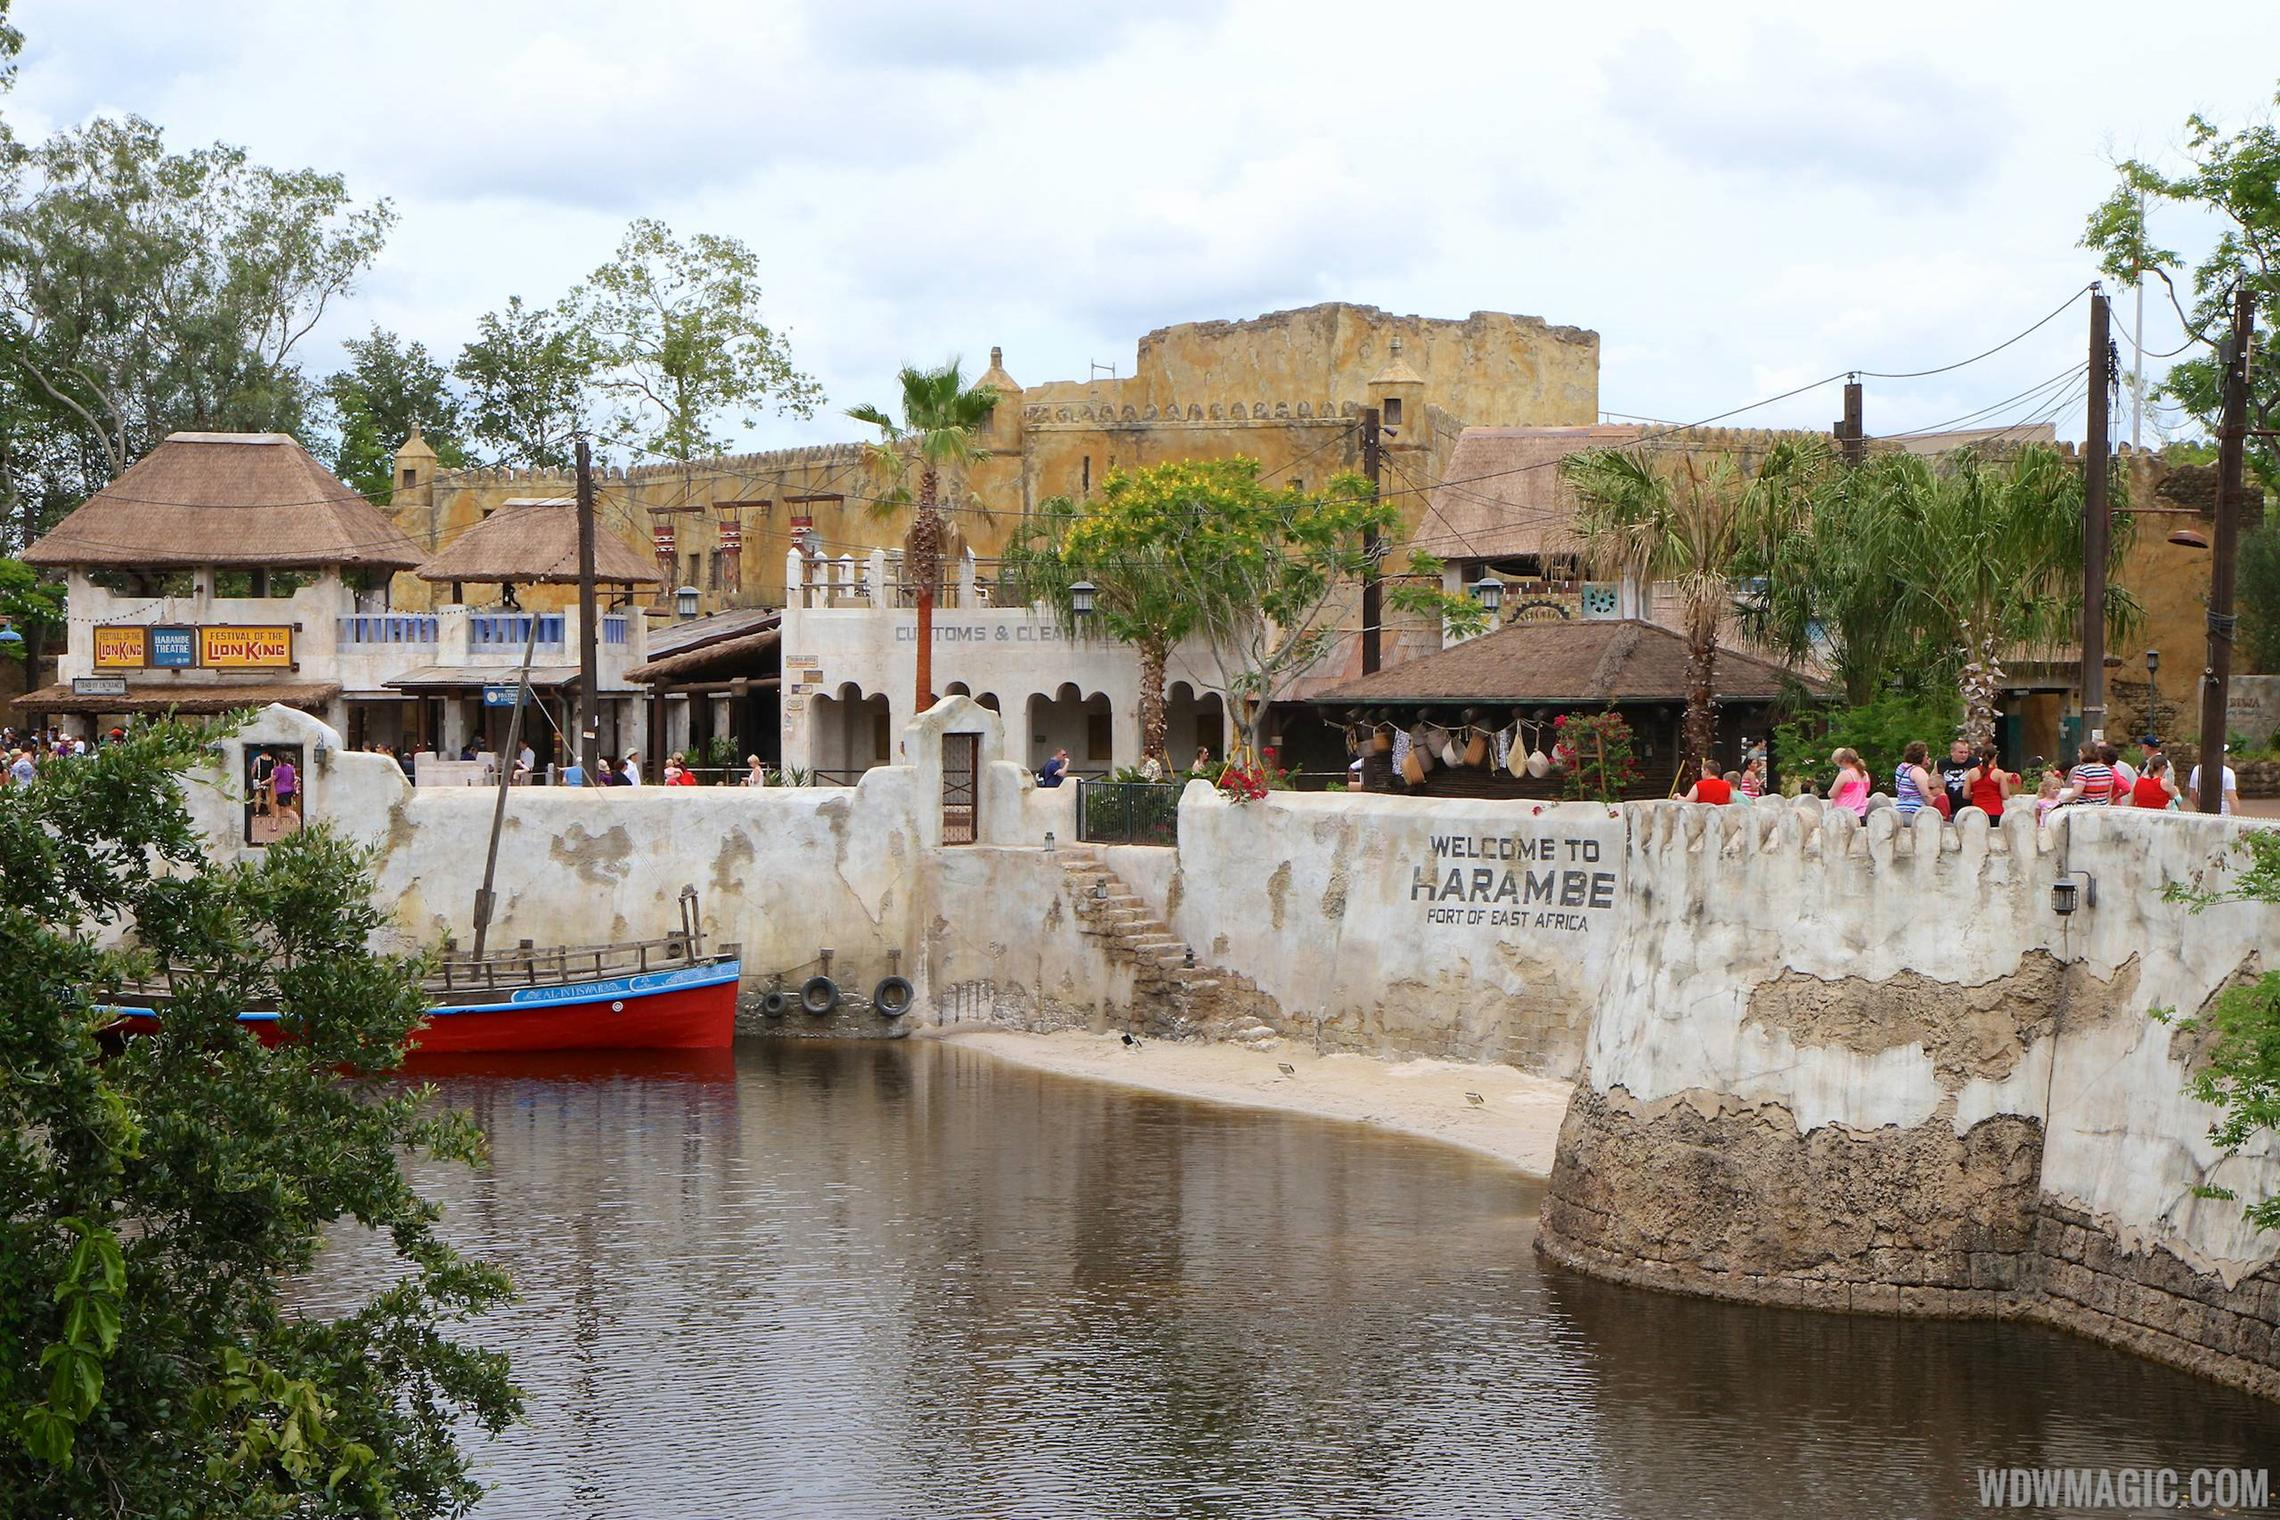 New Harambe Theatre area in Africa - View from Discovery Island bridge